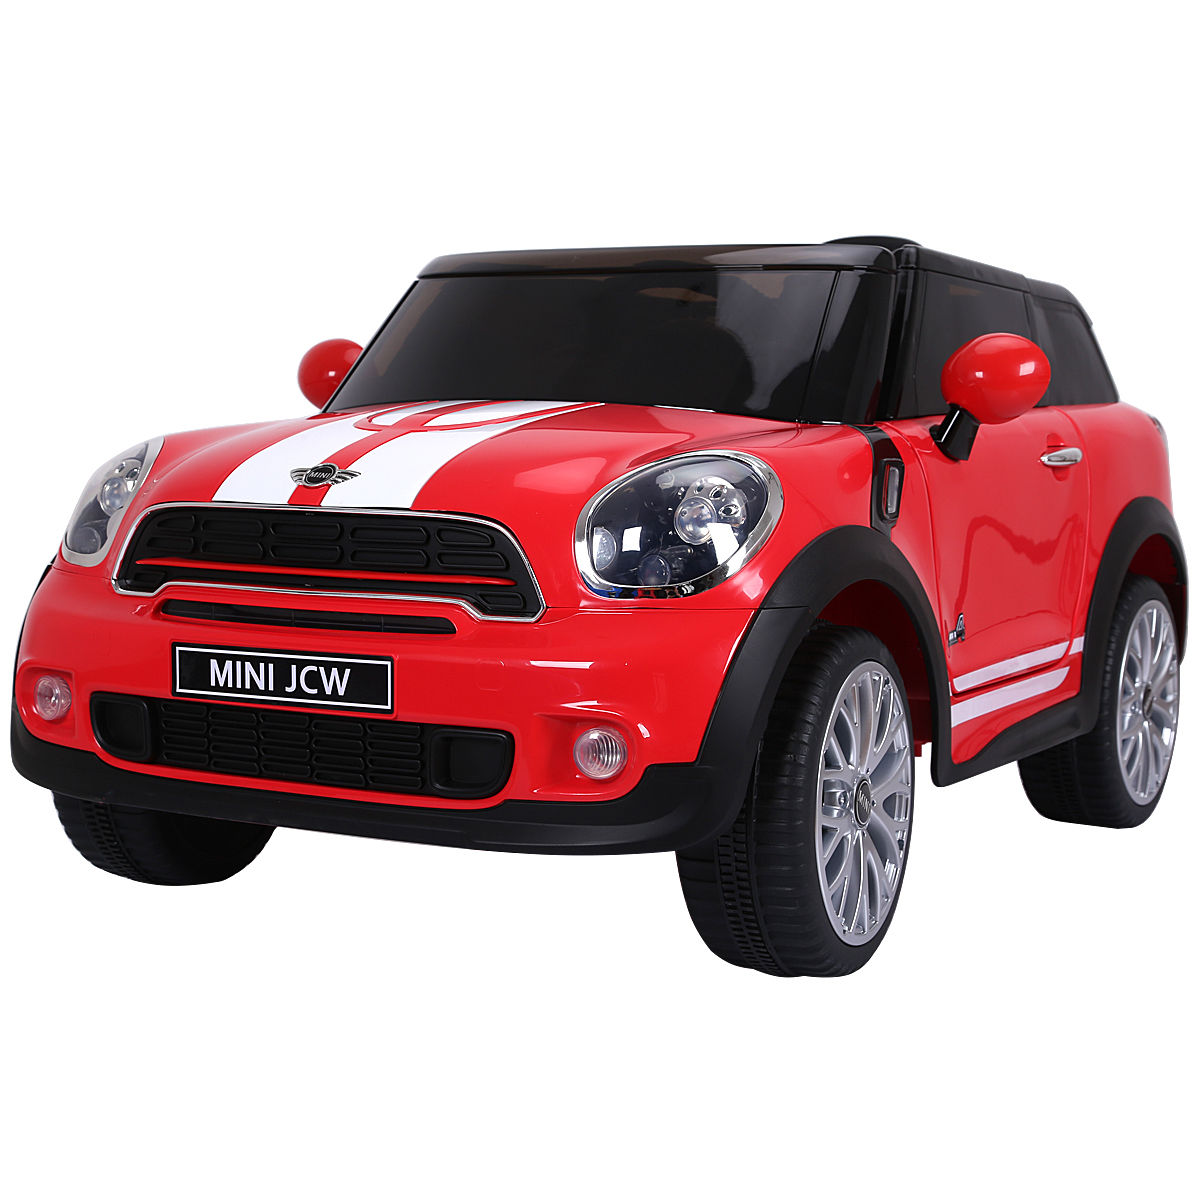 12V Electric MINI PACEMAN Kids Ride On Car Licensed R/C Remote Control MP3 Red